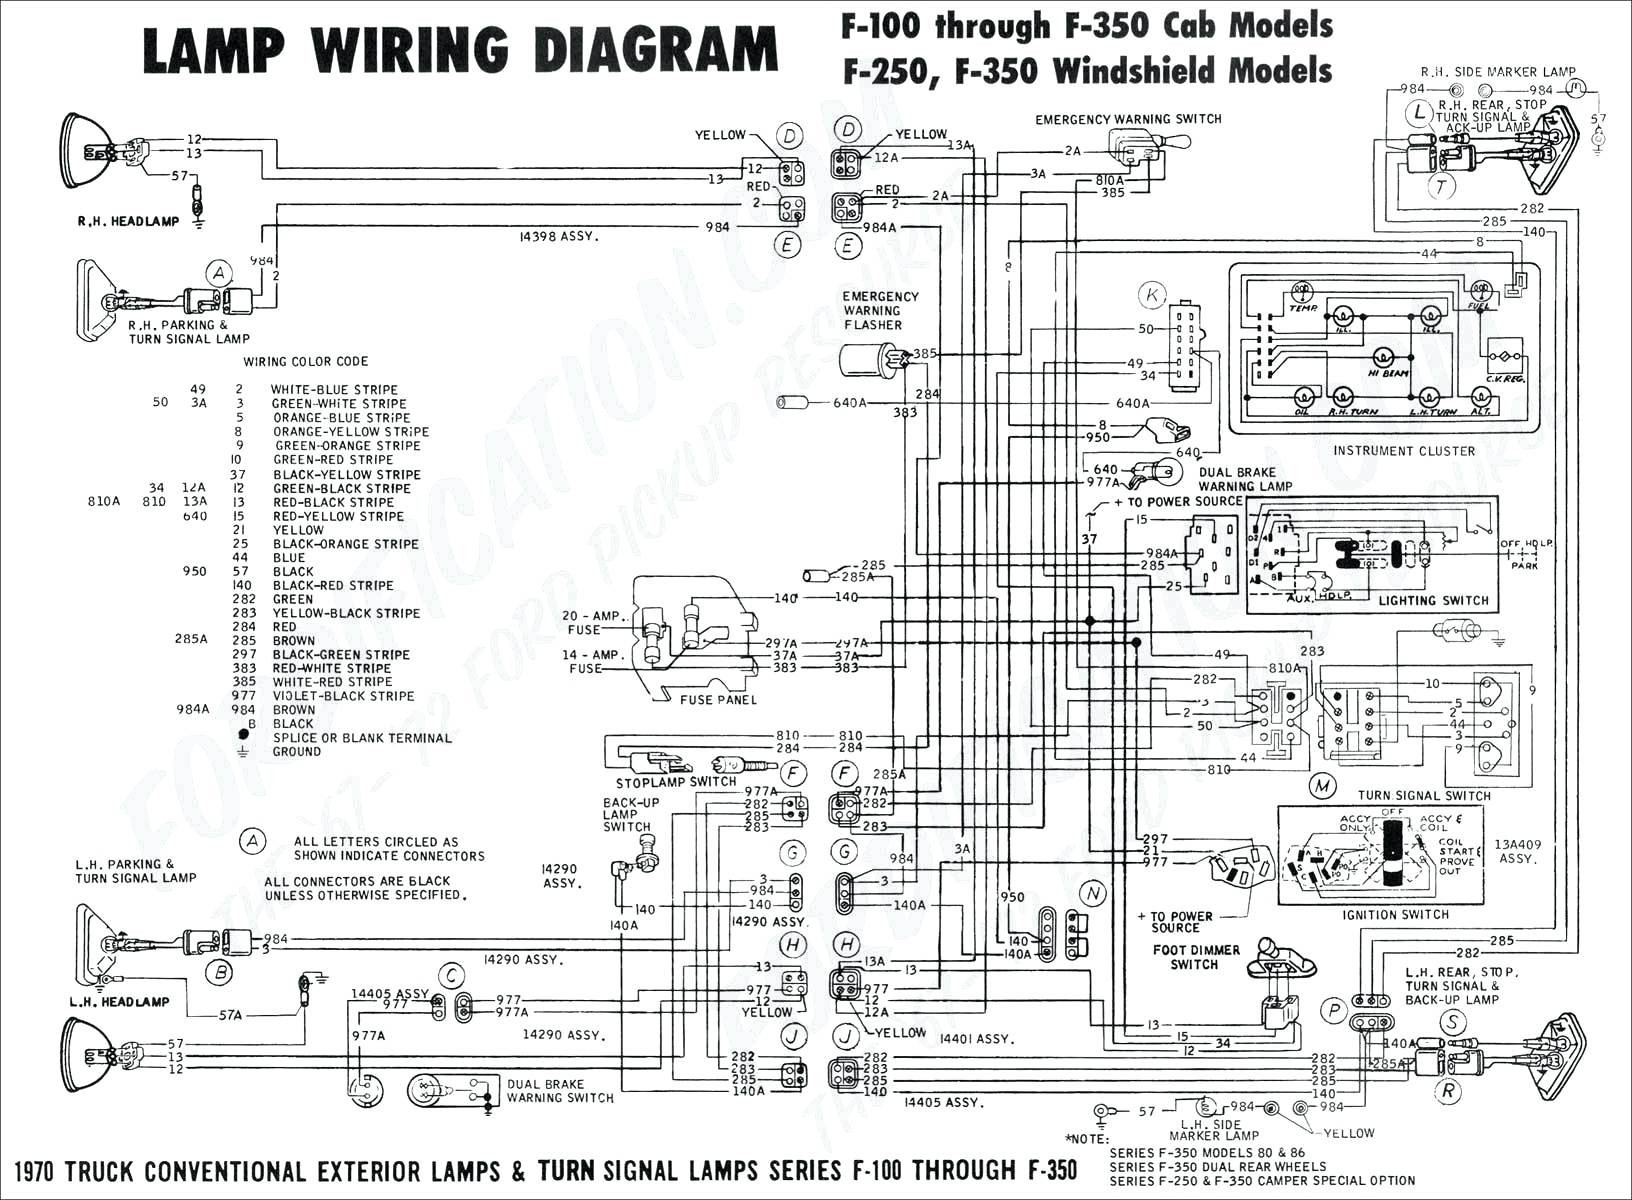 2006 Saturn Ion Engine Diagram E4od Fluid Diagram Experts Wiring Diagram • Of 2006 Saturn Ion Engine Diagram